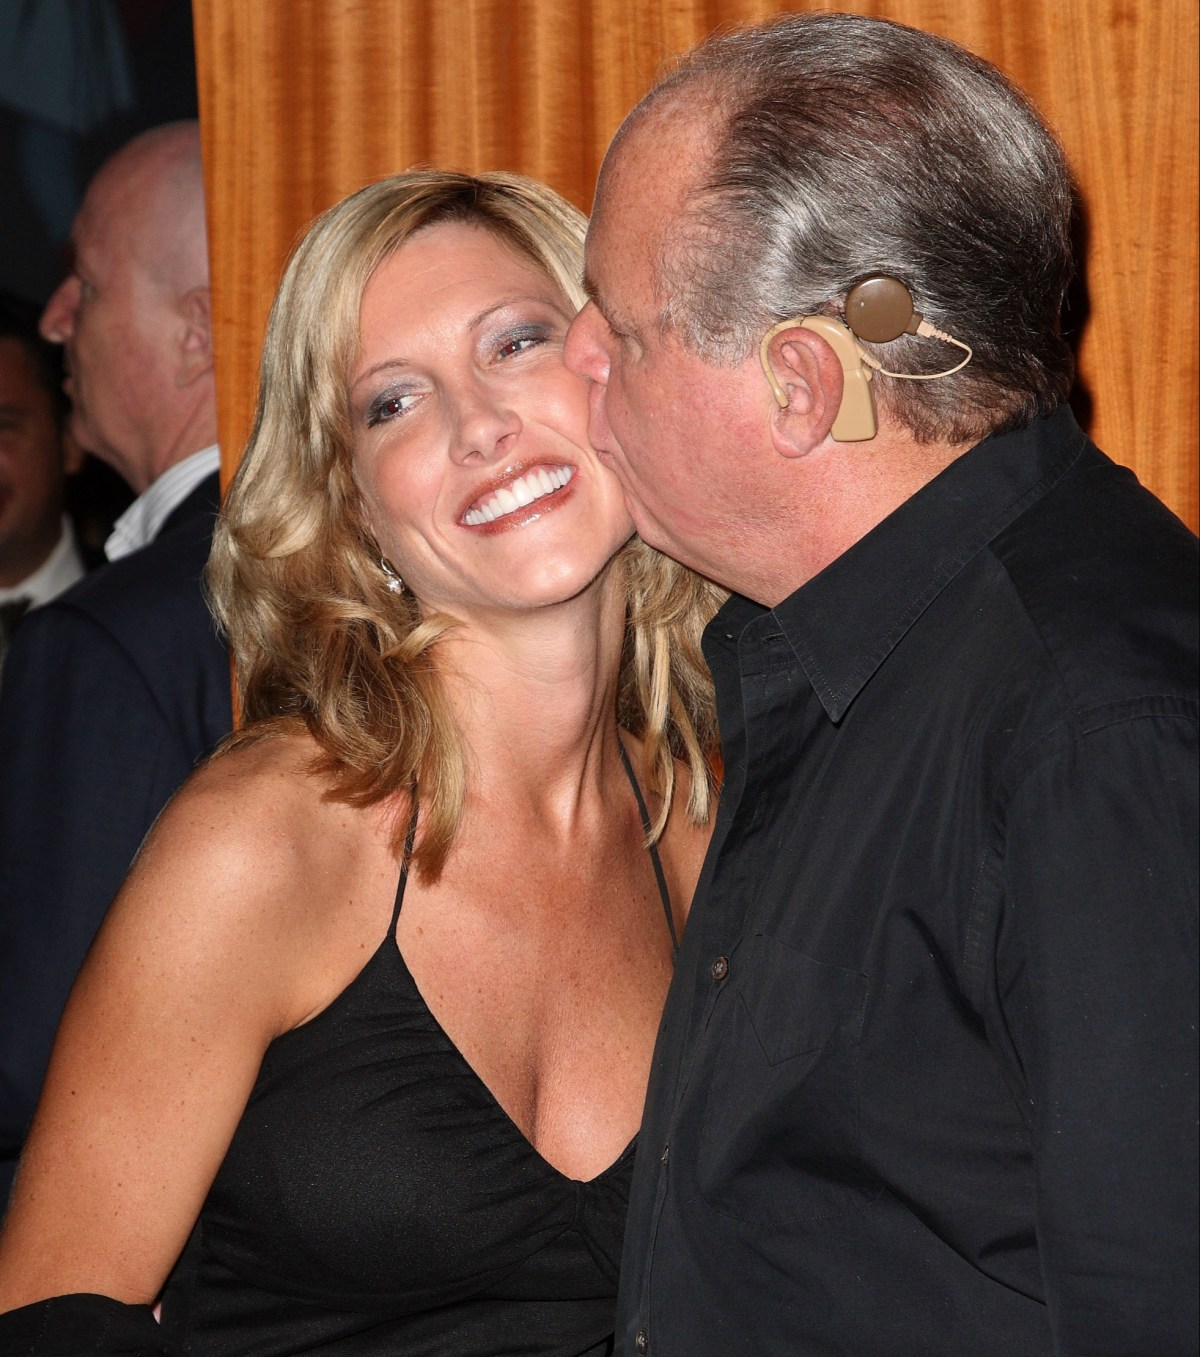 Rush Limbaugh and his wife Kathryn